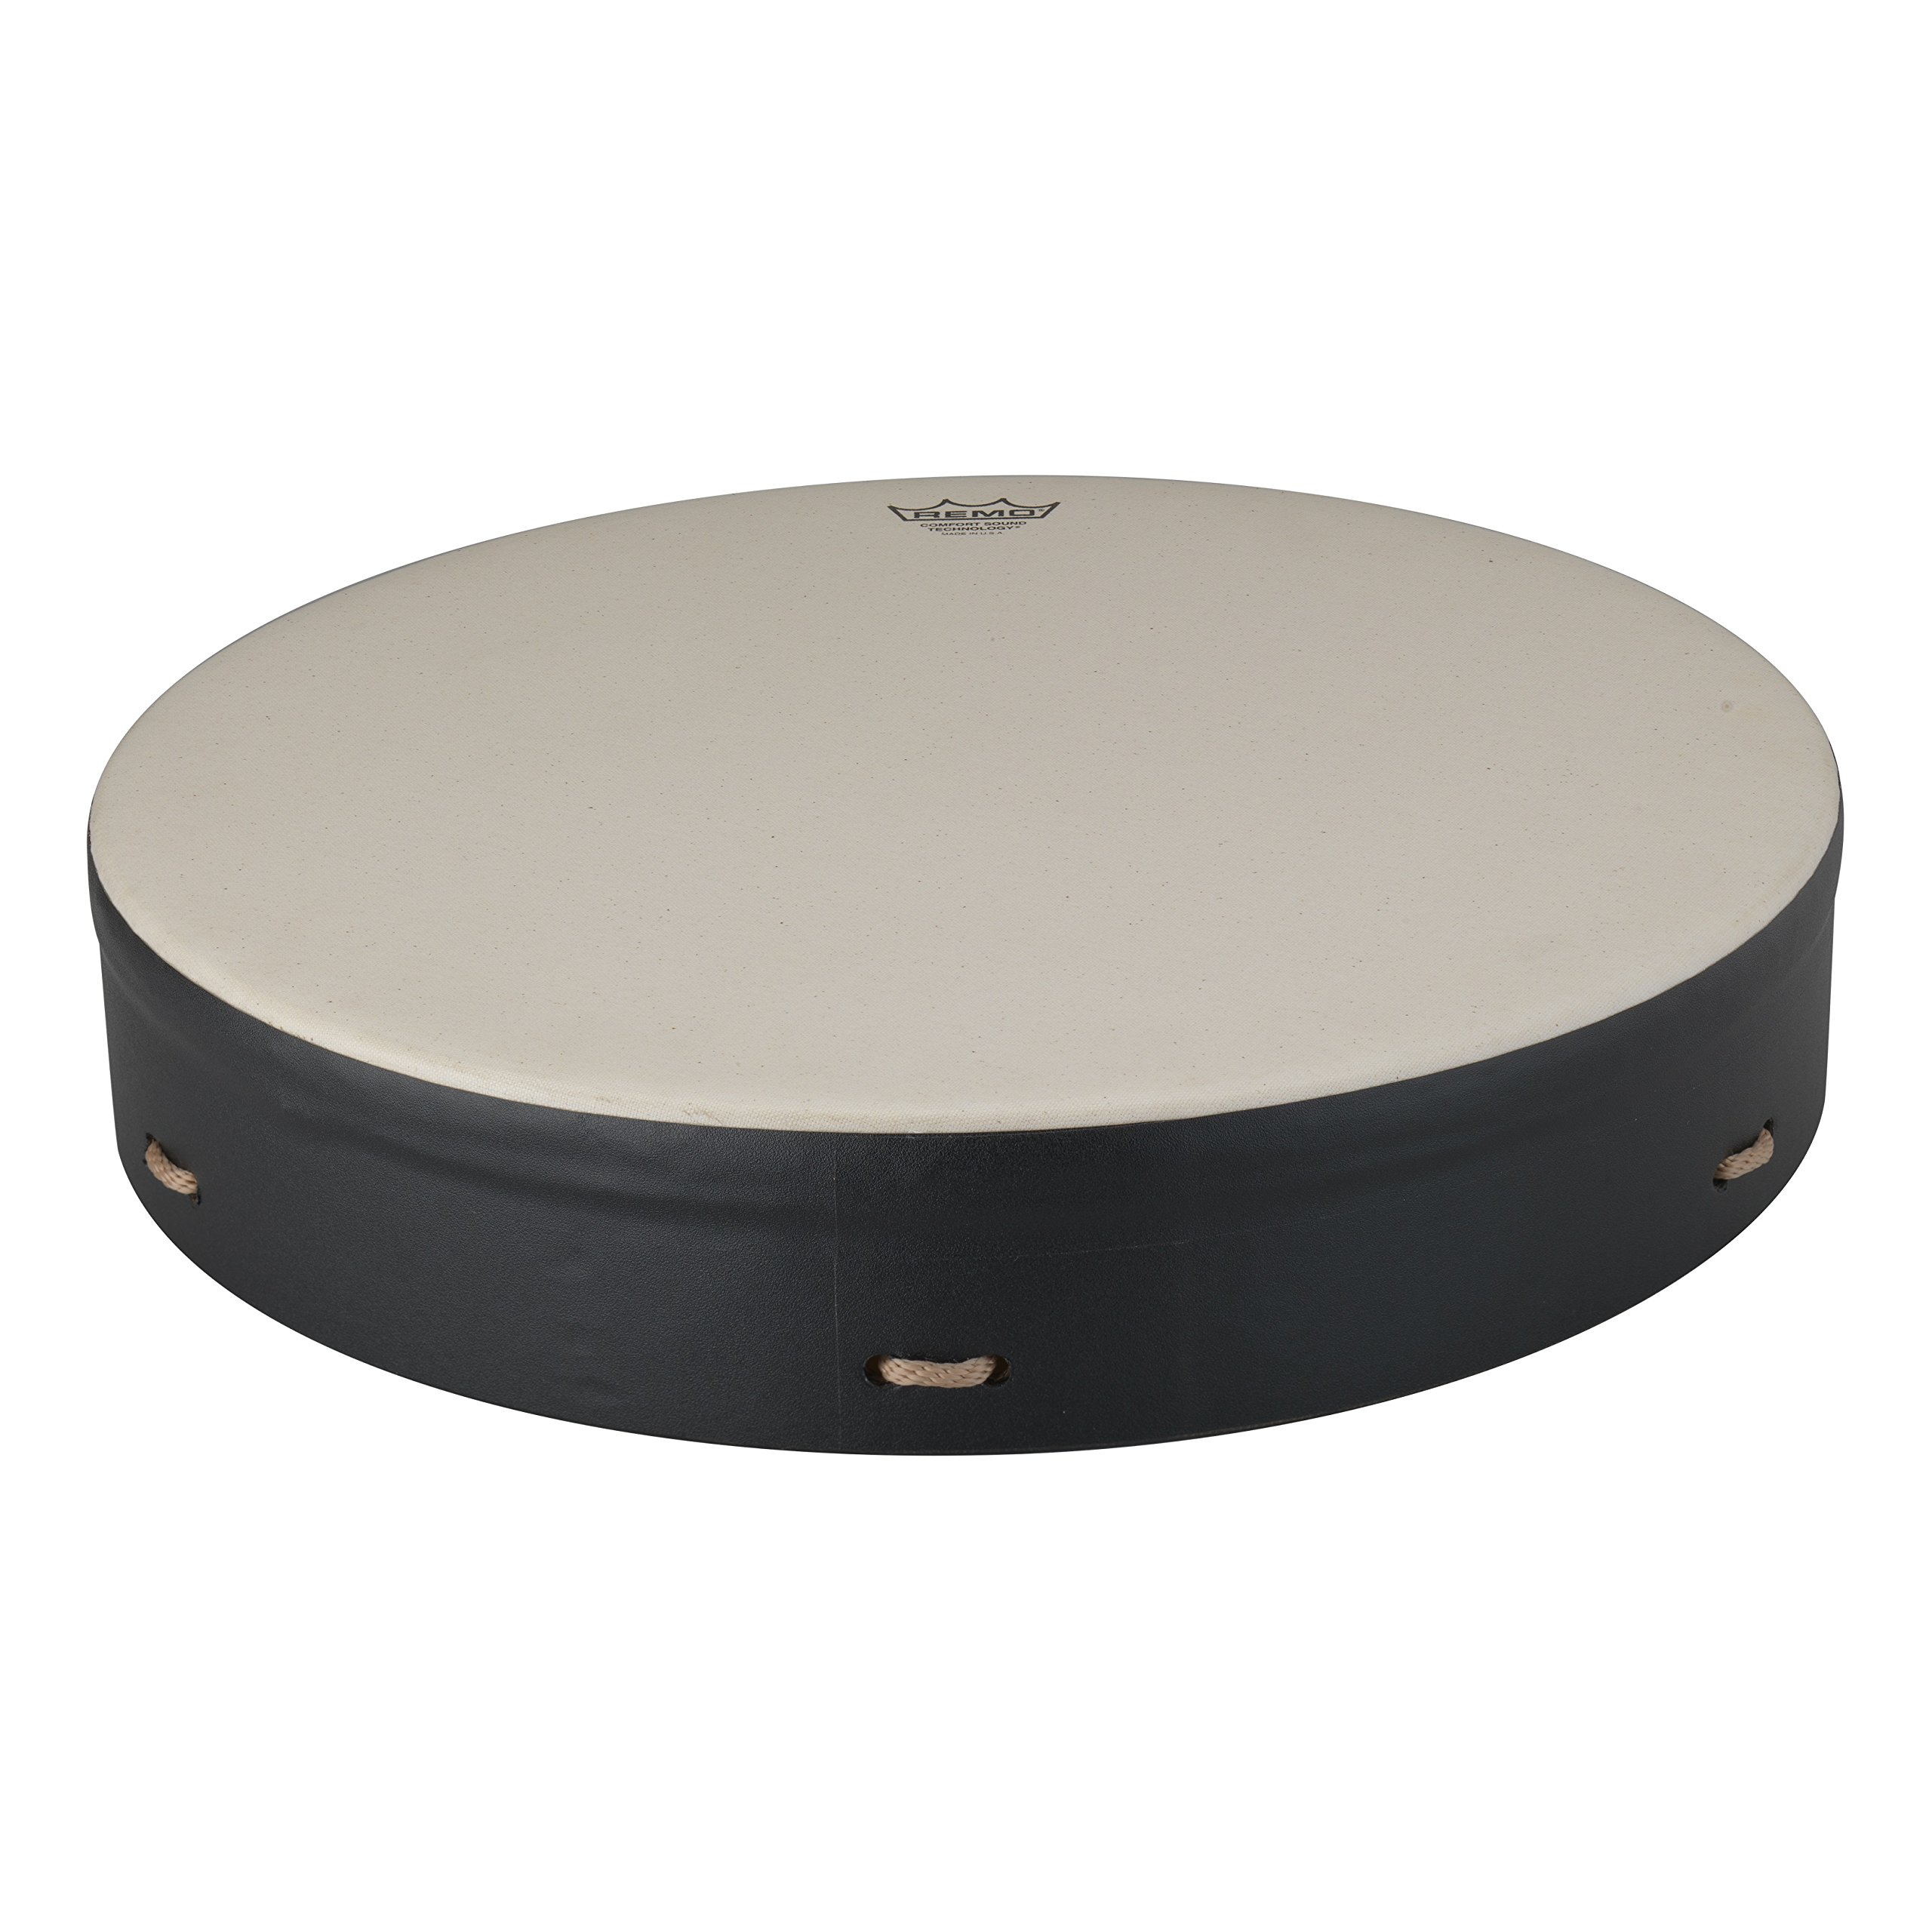 Remo Buffalo Drum with Comfort Sound Technology 14 in. Black